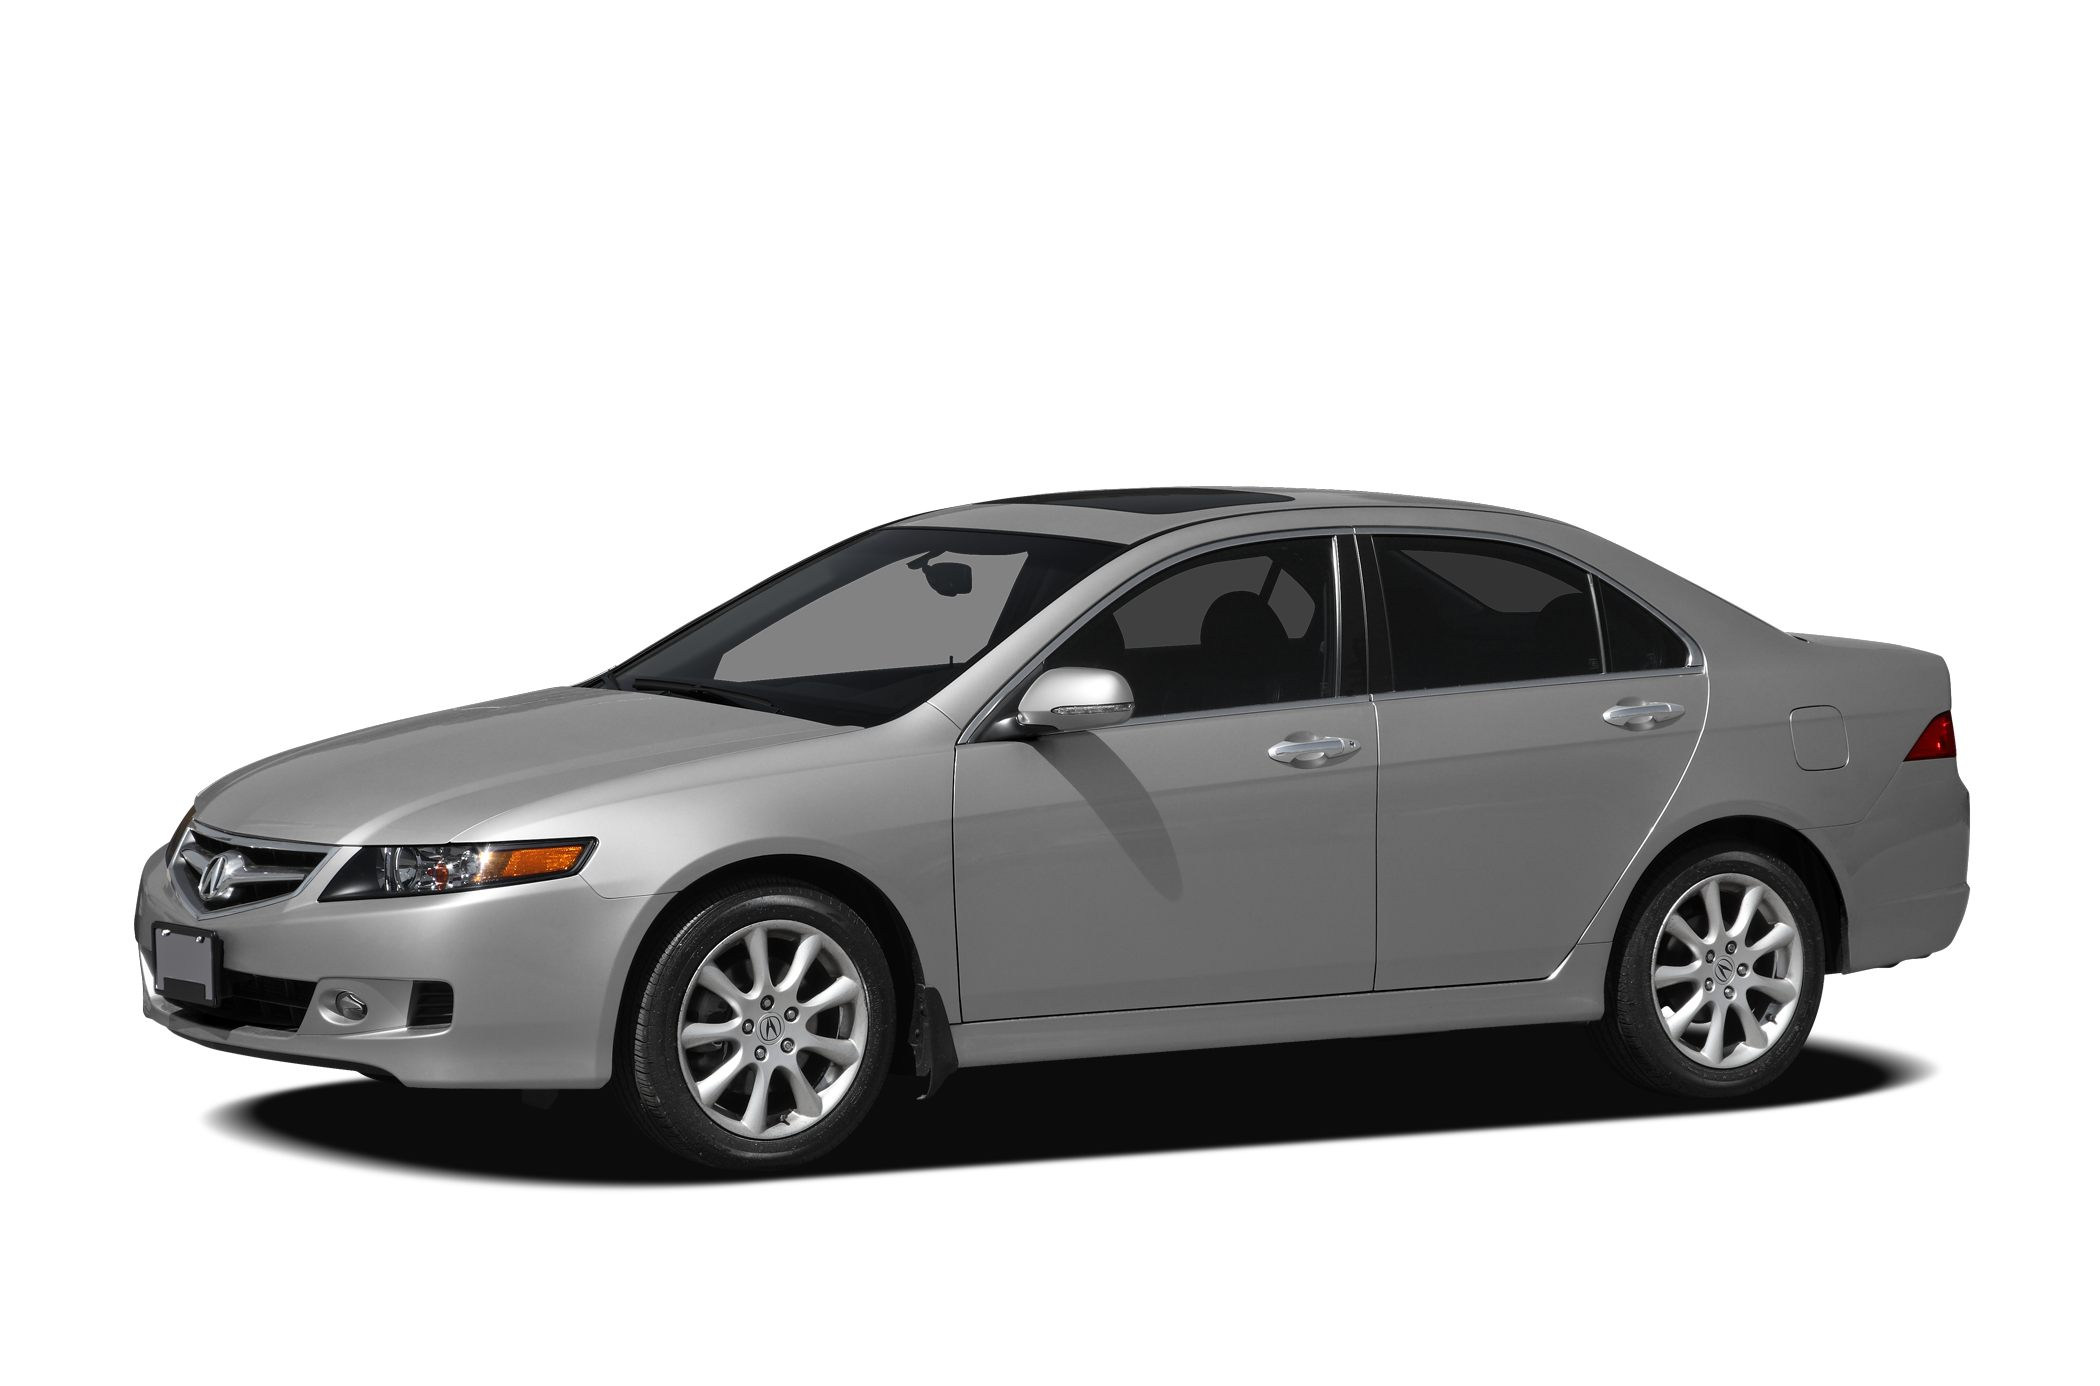 2008 Acura TSX Sedan for sale in Hatfield for $13,950 with 54,808 miles.